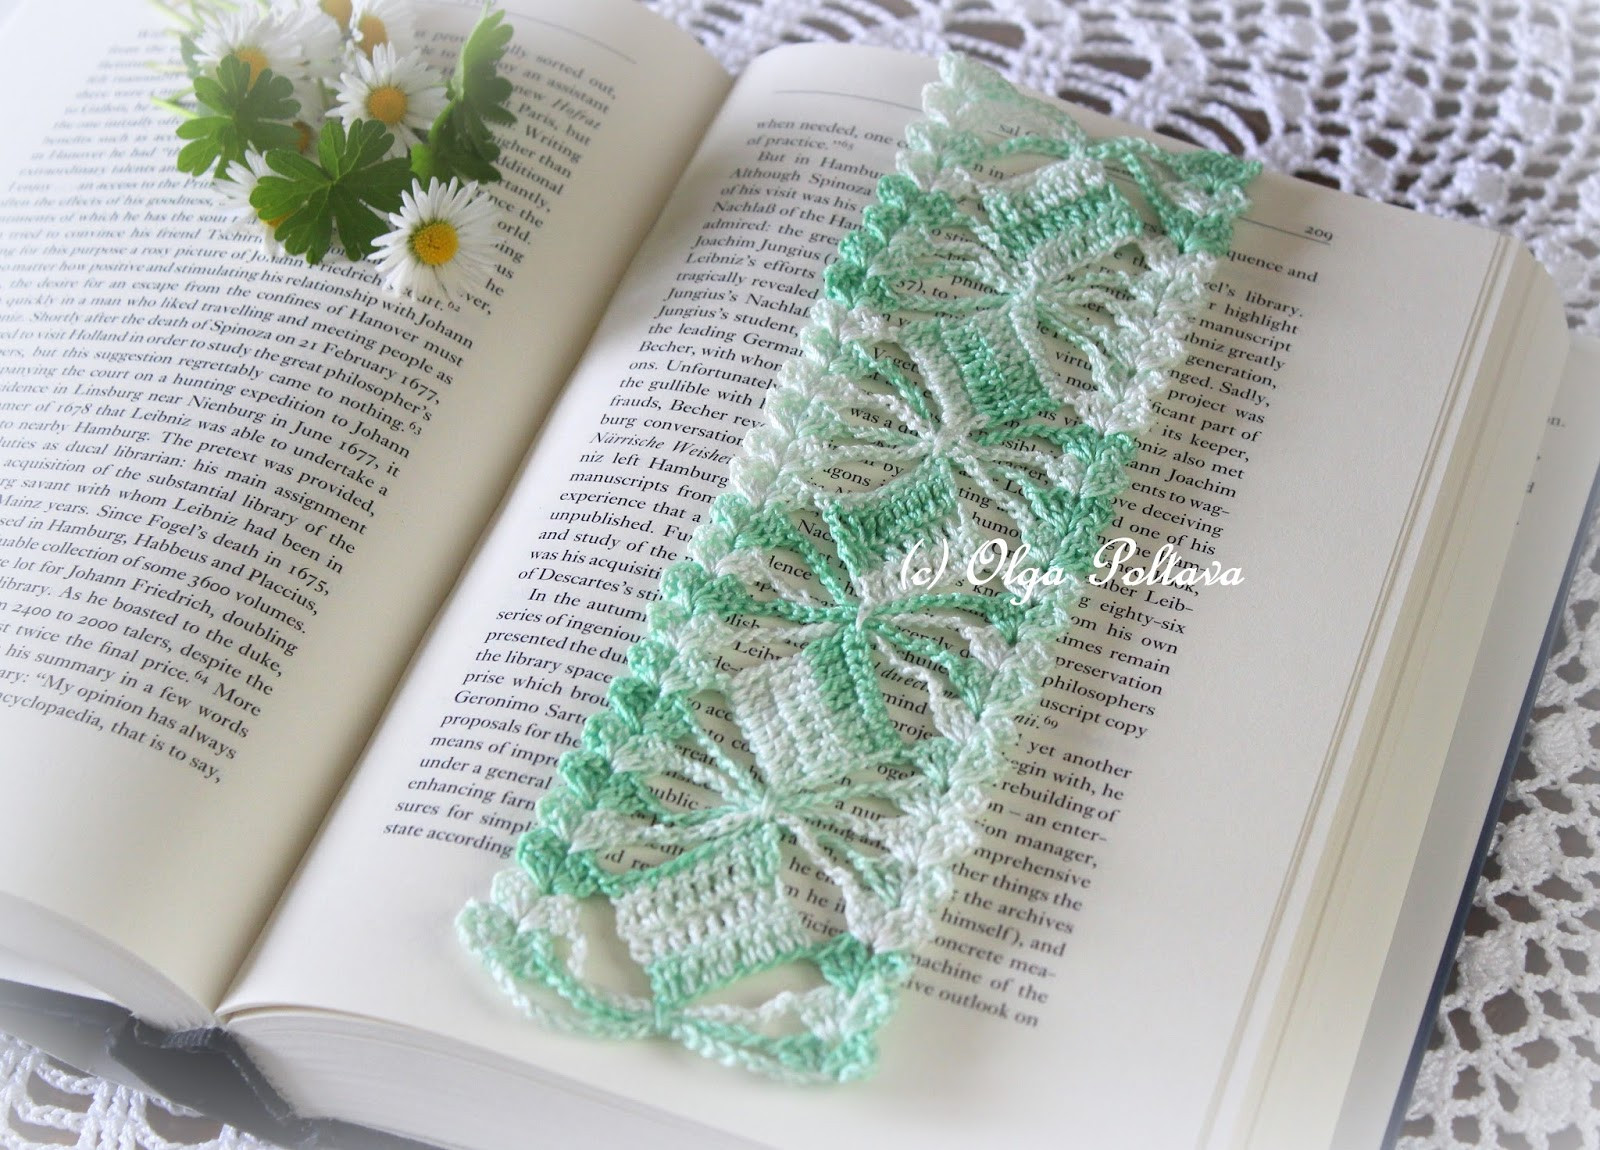 Crochet Lace Pattern Inspirational Lacy Crochet Crochet Lace Bookmark Of Gorgeous 50 Photos Crochet Lace Pattern